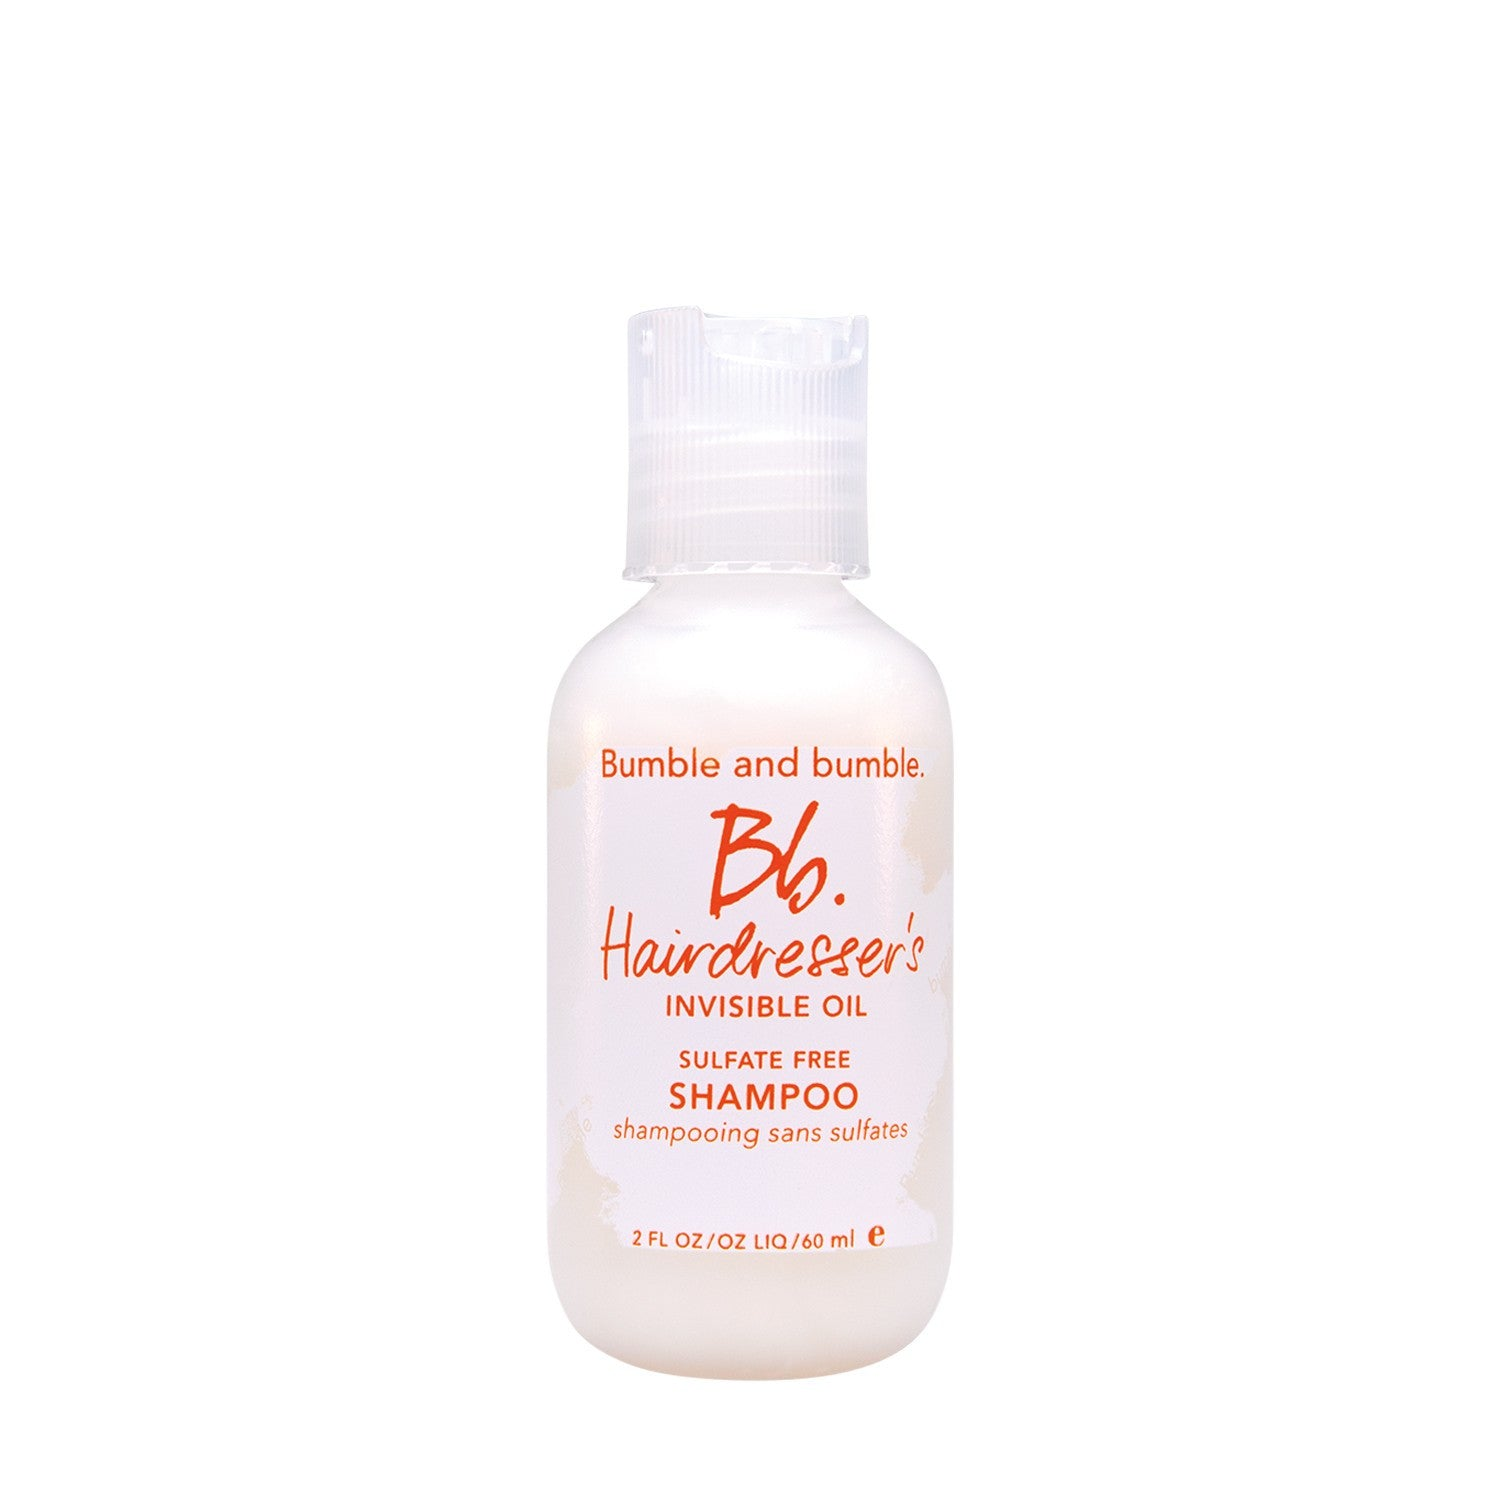 2oz Bumble and Bumble Hairdresser's Invisible Oil Shampoo